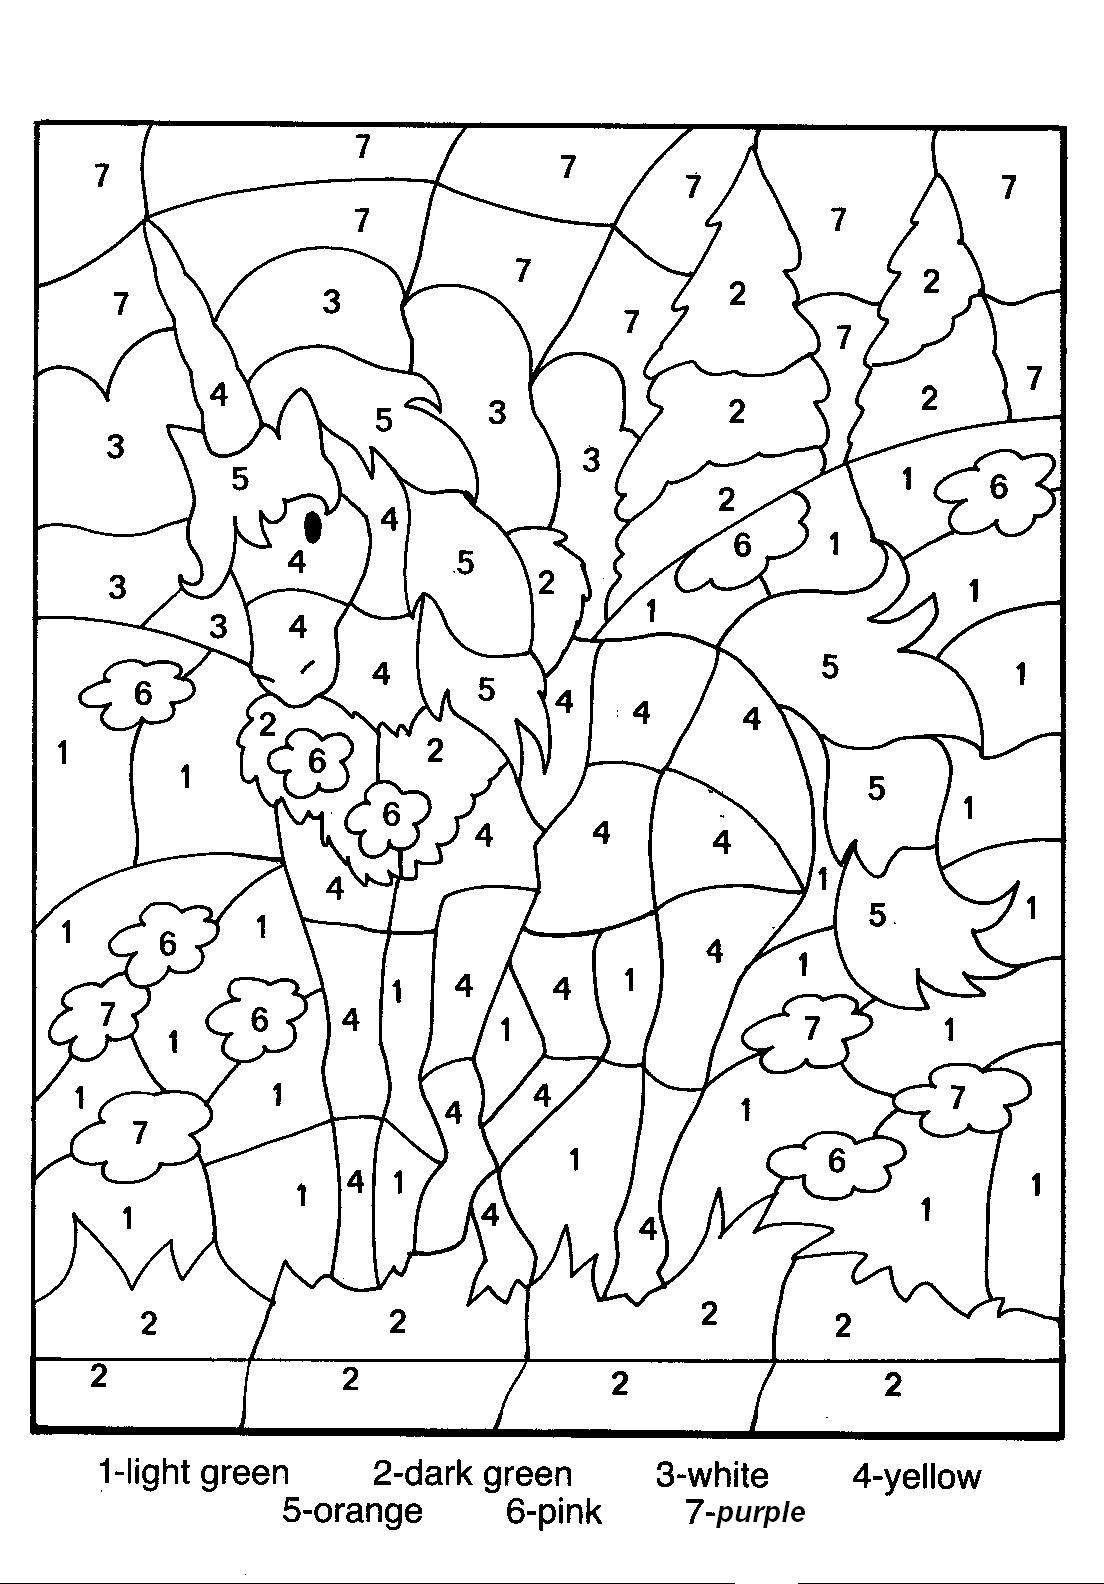 Free Printable Colornumber Coloring Pages | Colornumber - Free Printable Color By Number